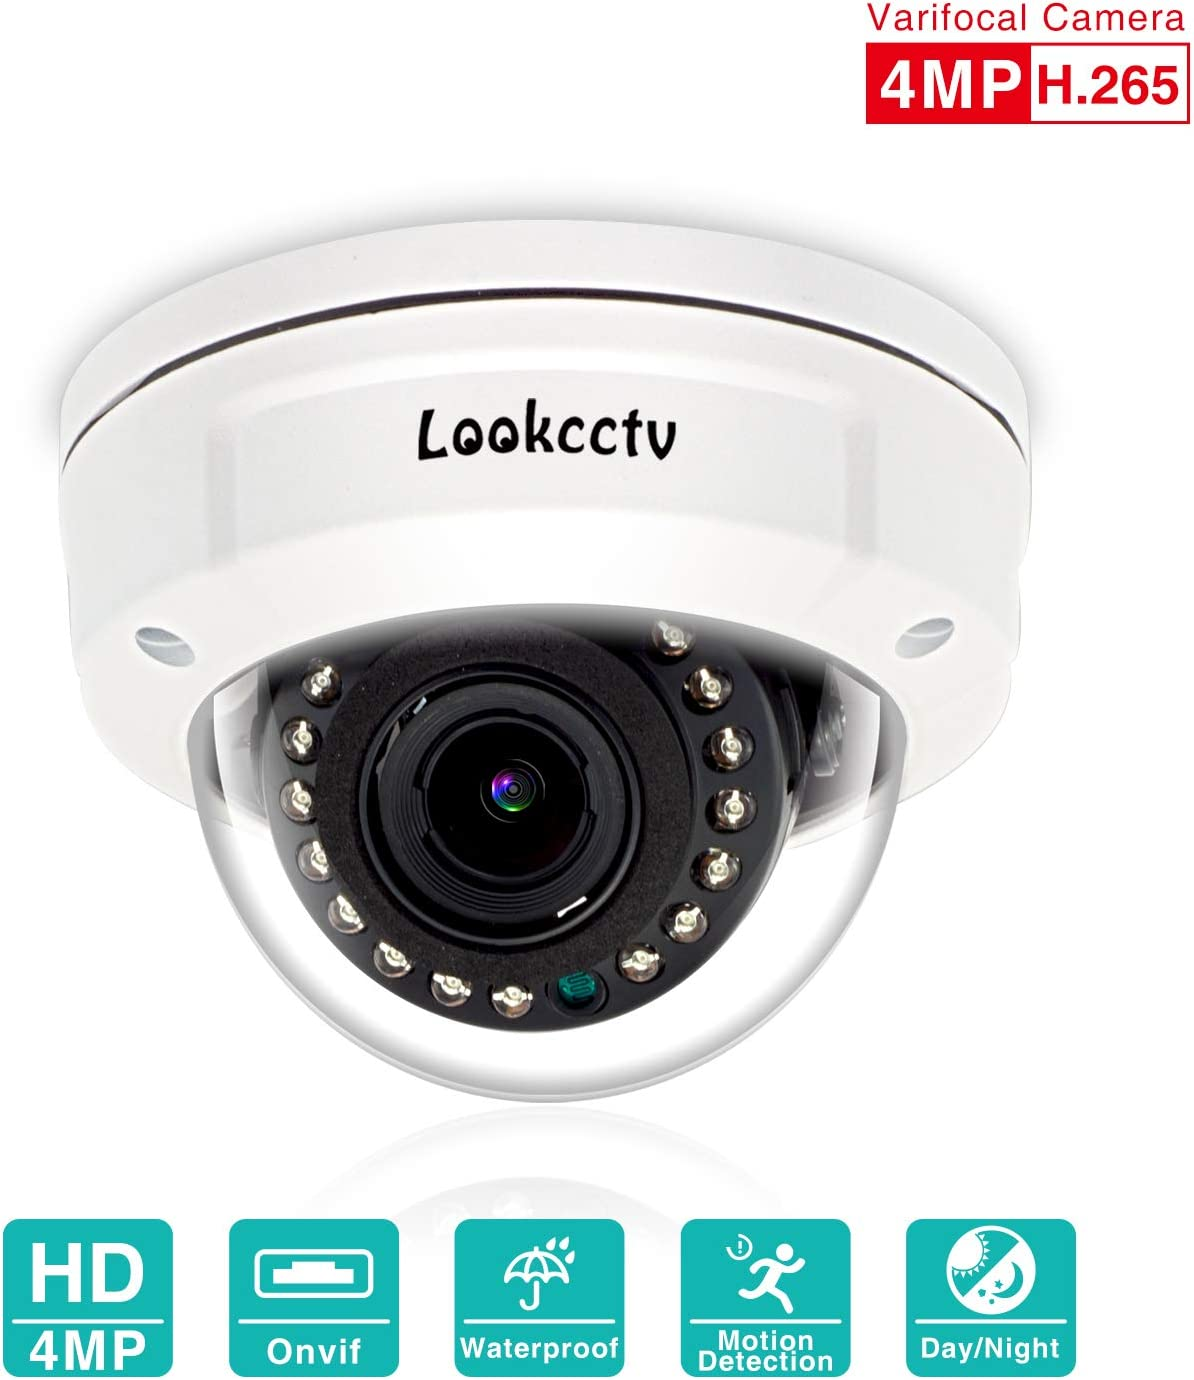 lookcctv POE Vandal-Proof IP Dome Camera, 4MP Waterproof Security Camera, Night Vision Video Surveillance Camera,2.8-12mm Varifocal Lens, Motion Detection Alarm, Compatible with ONVIF NVR